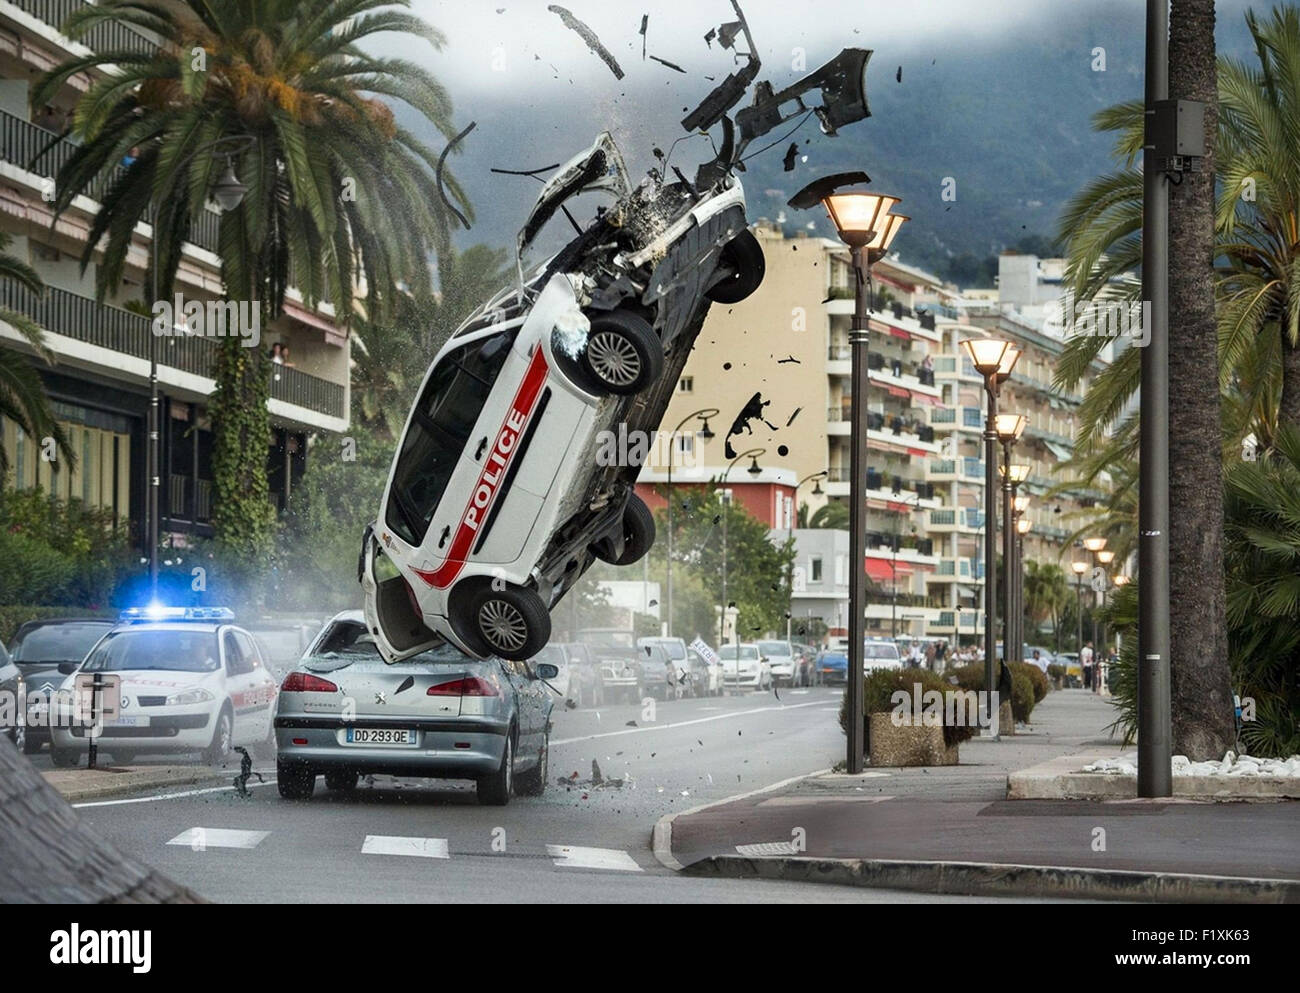 THE TRANSPORTER REFUELED 2015 EuropaCorp USA film - Stock Image